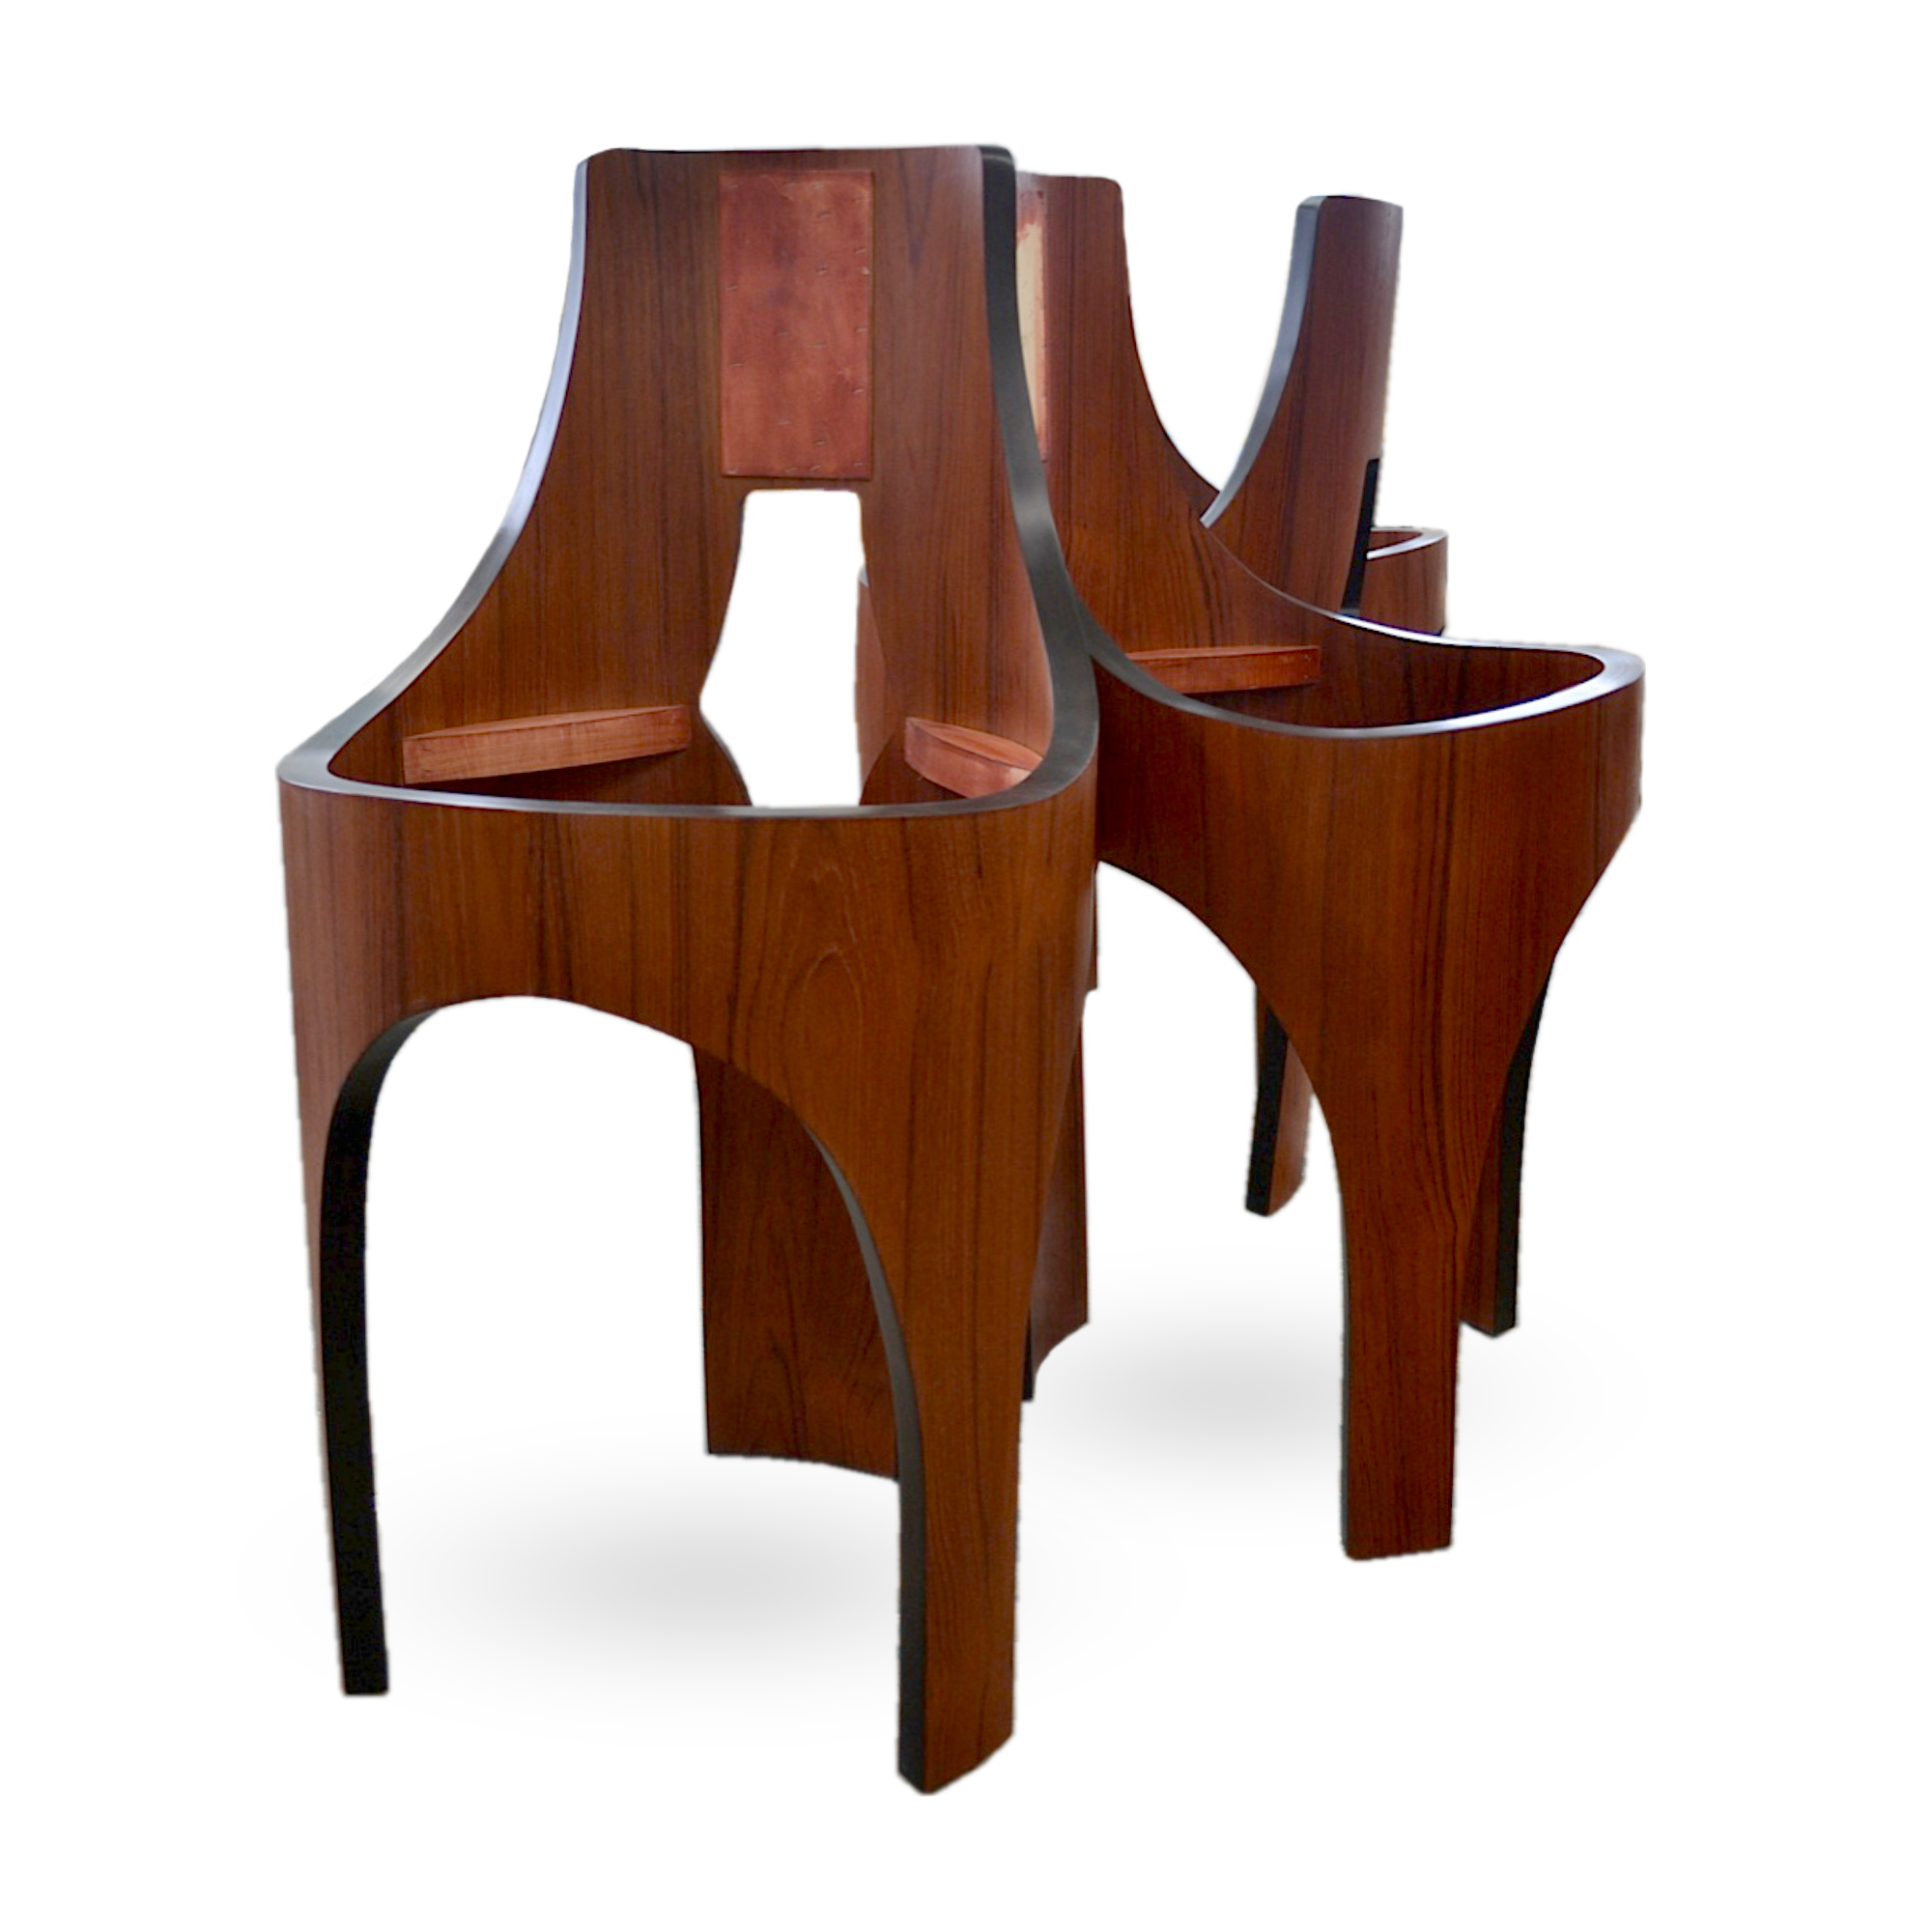 Stained-Wood-Chair-Frames.jpg